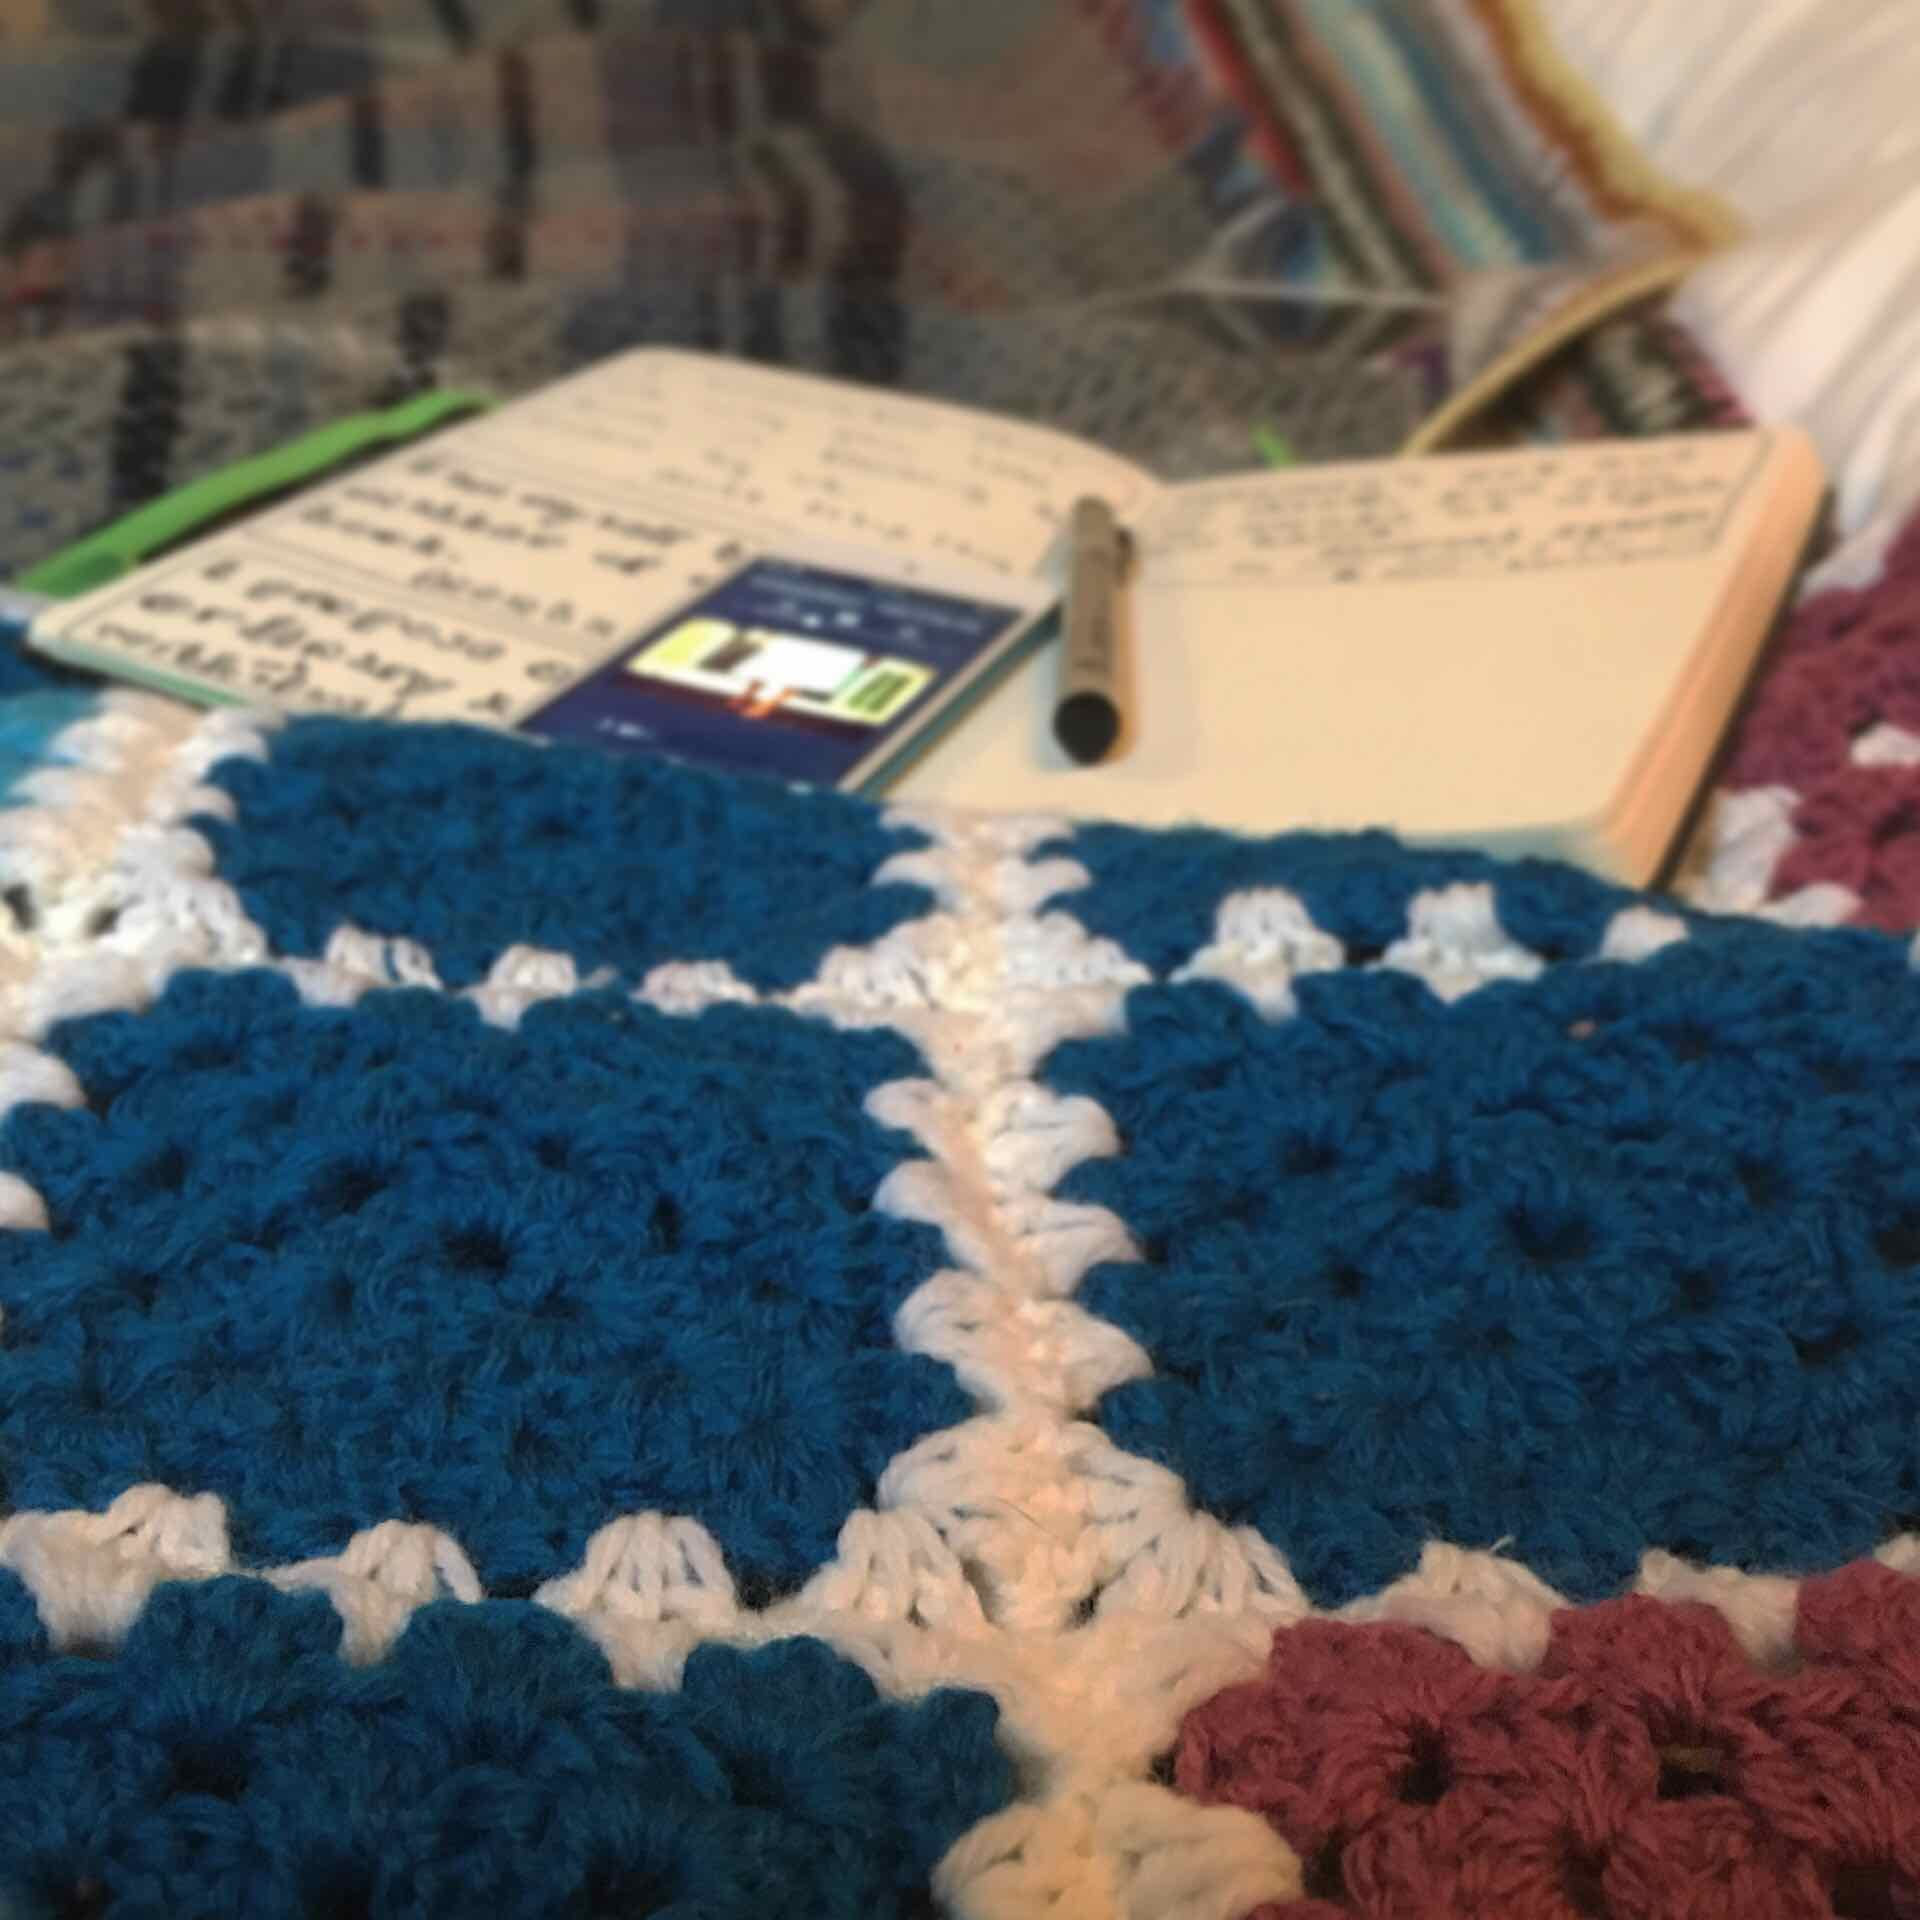 Crocheting and listening